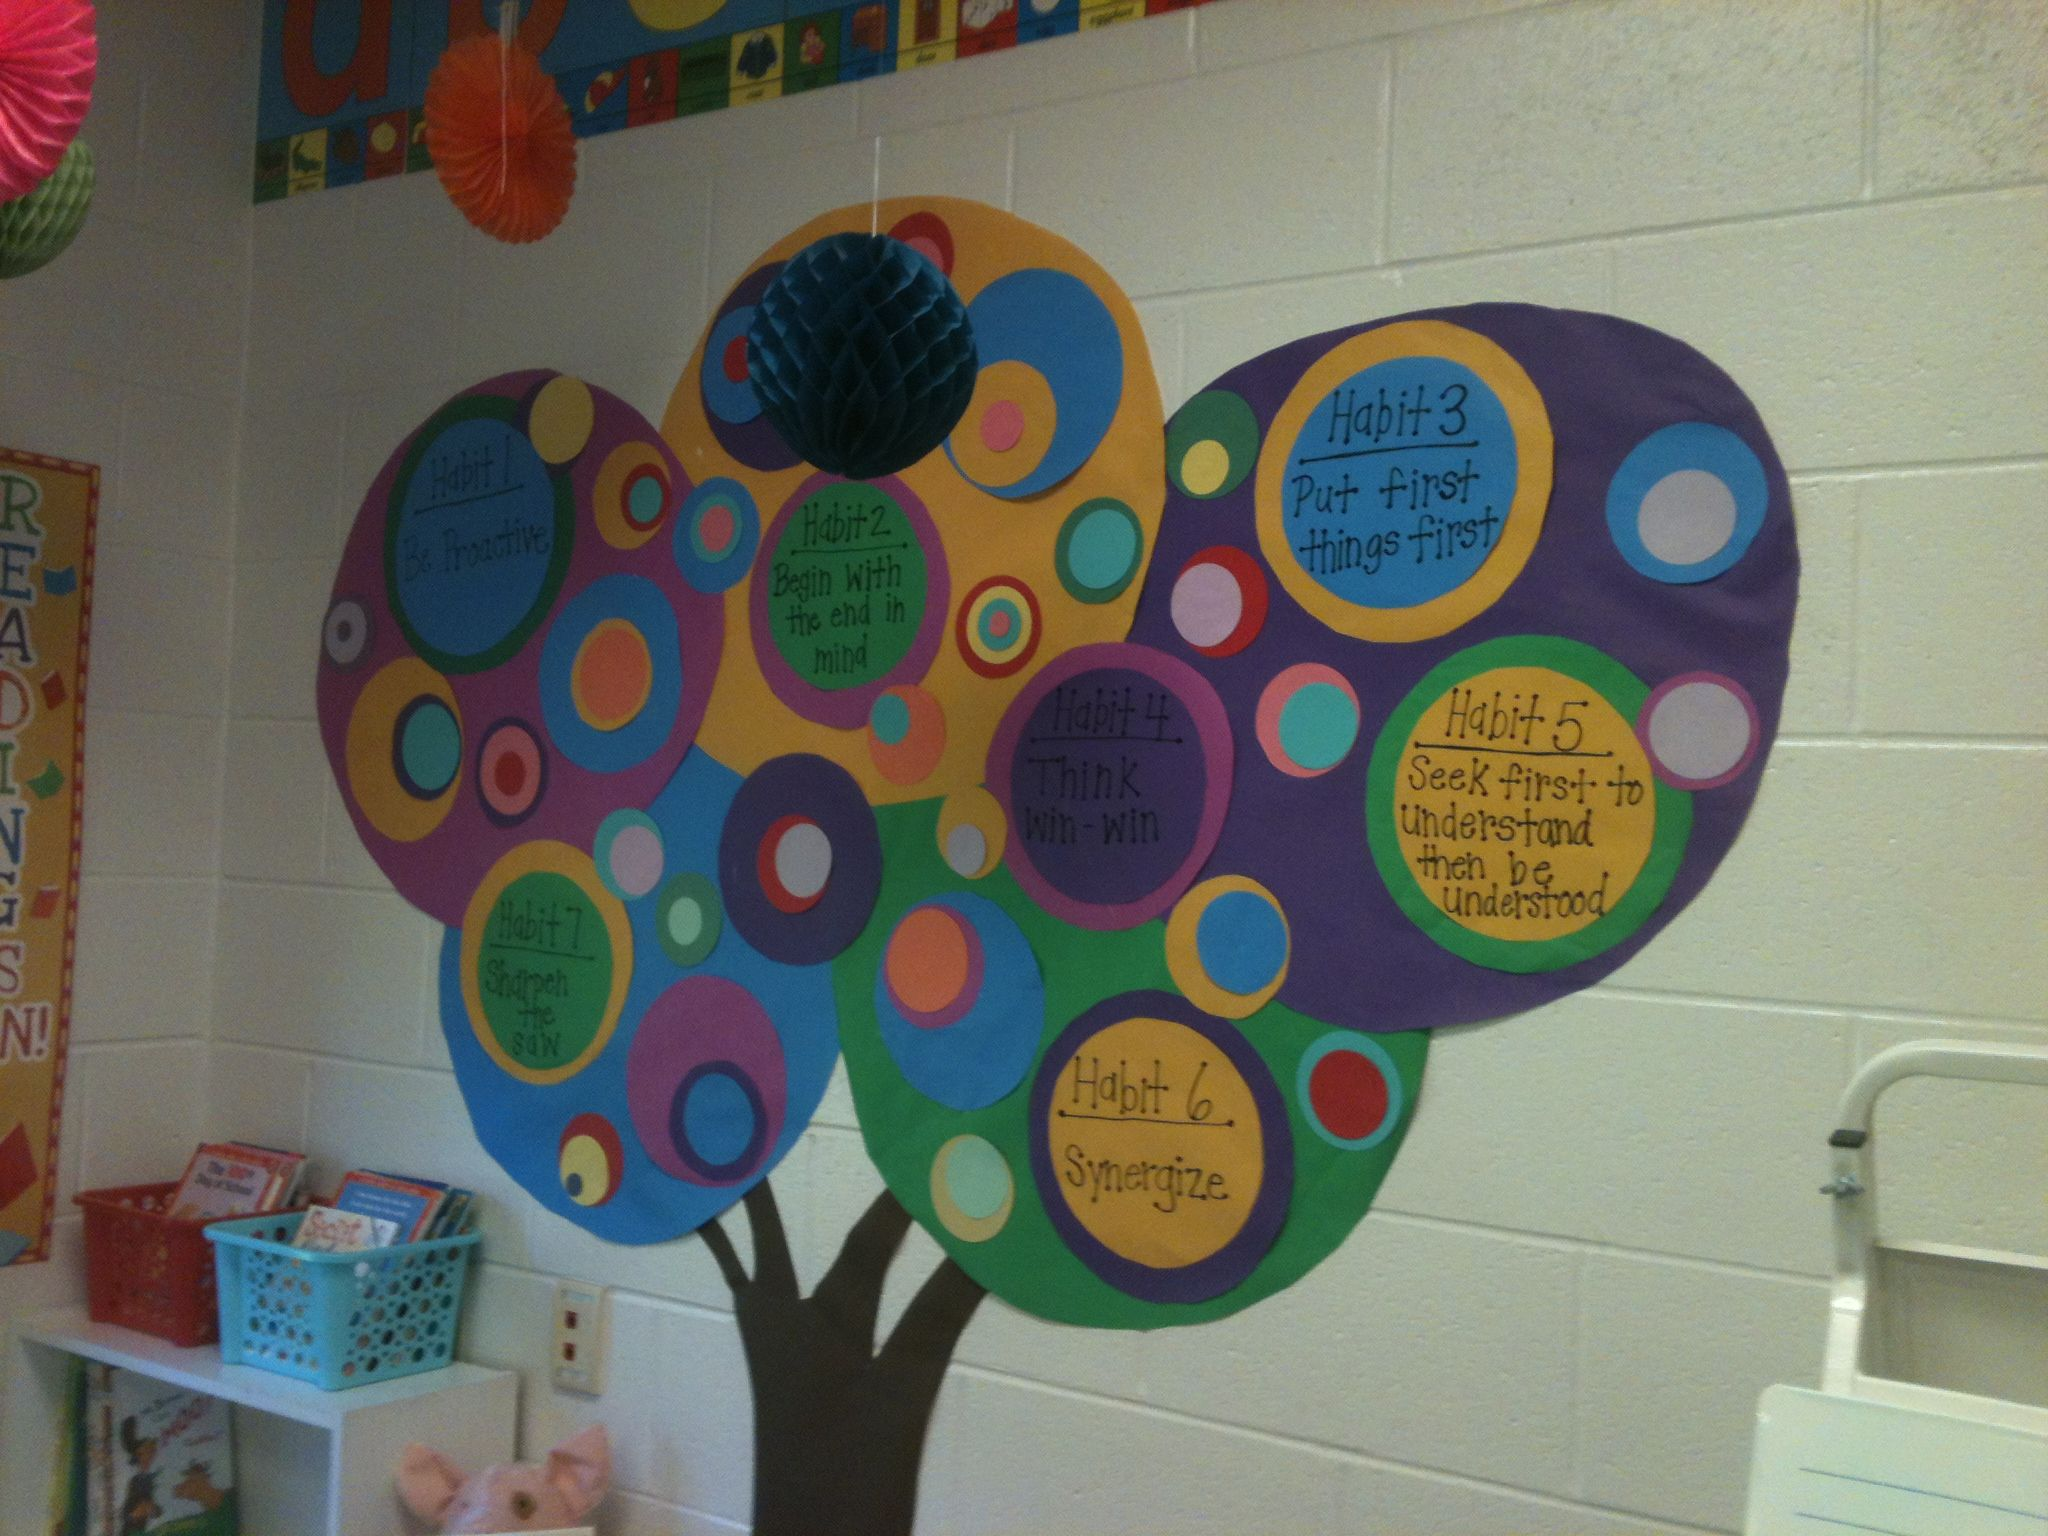 Leader in me tree from ches like the habits inside the for 7 habits tree mural